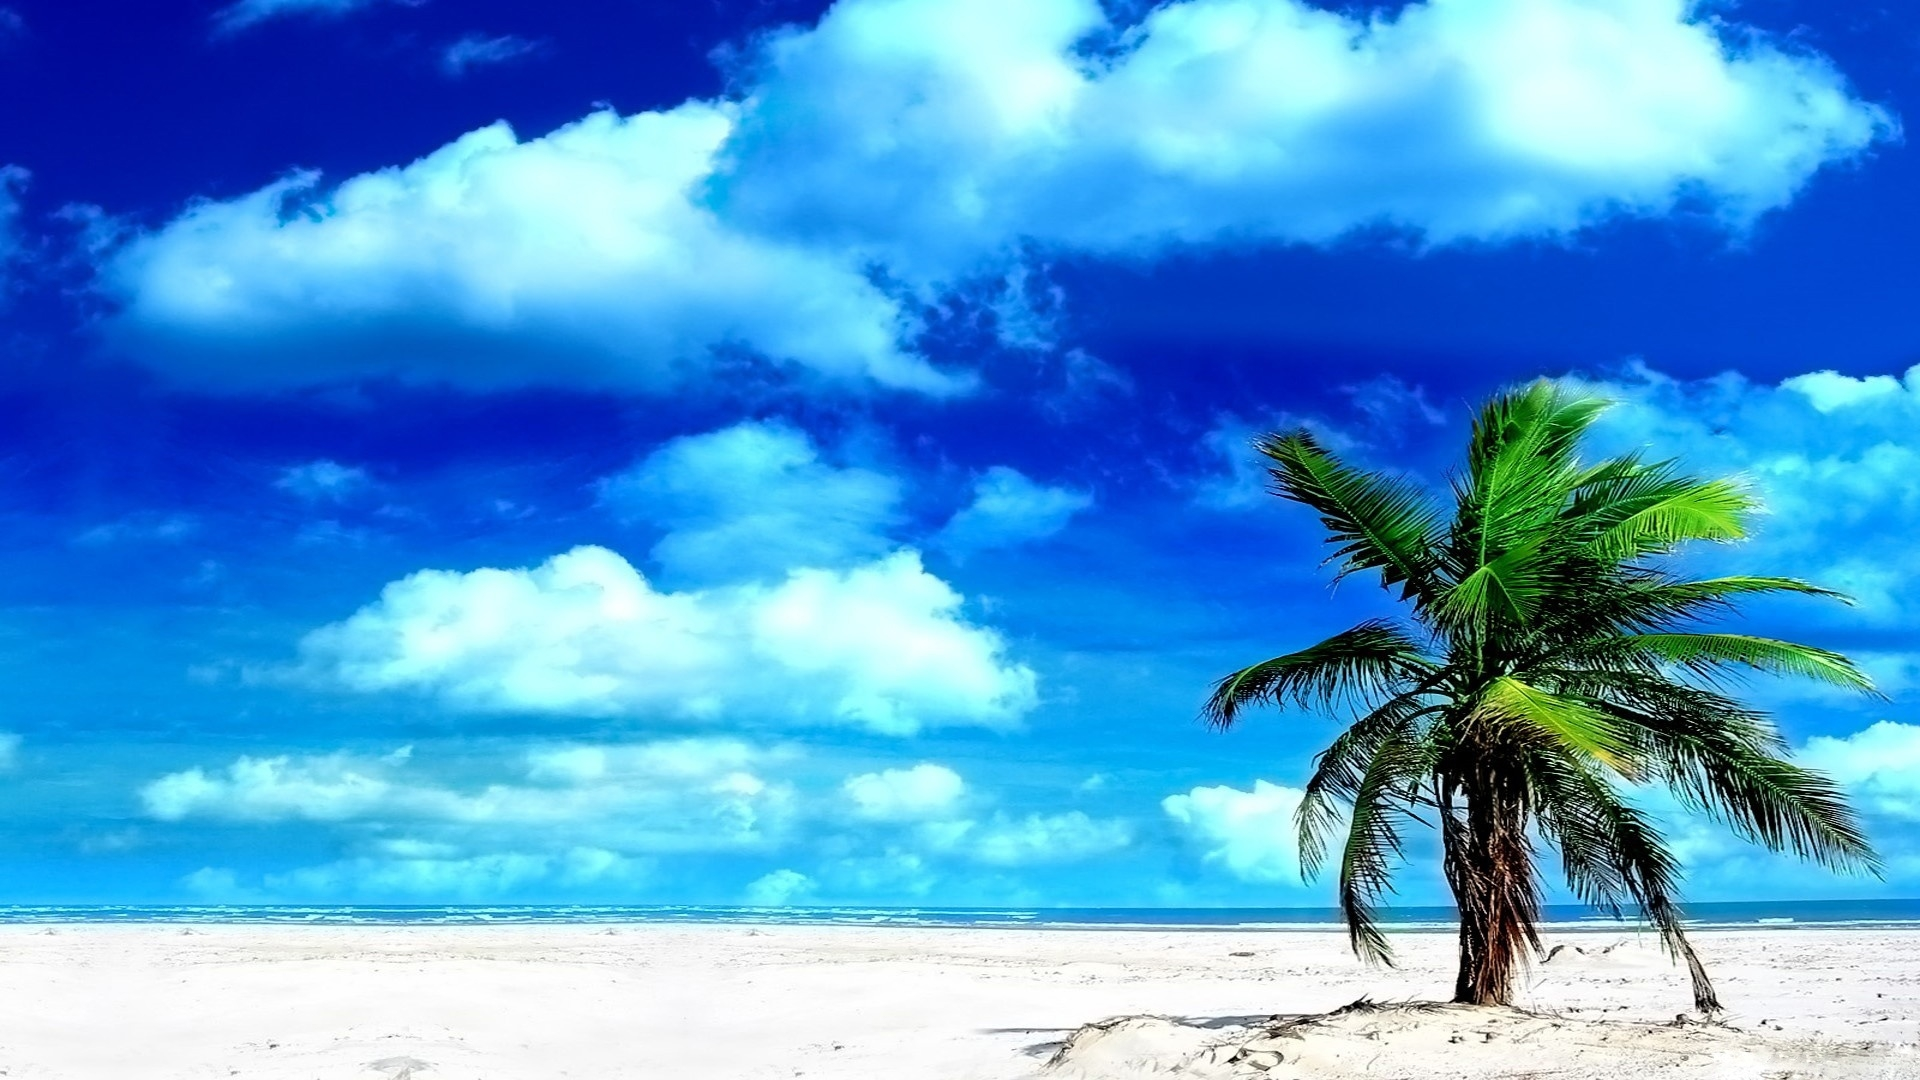 1920x1080 Paradise Island desktop PC and Mac wallpaper 1920x1080